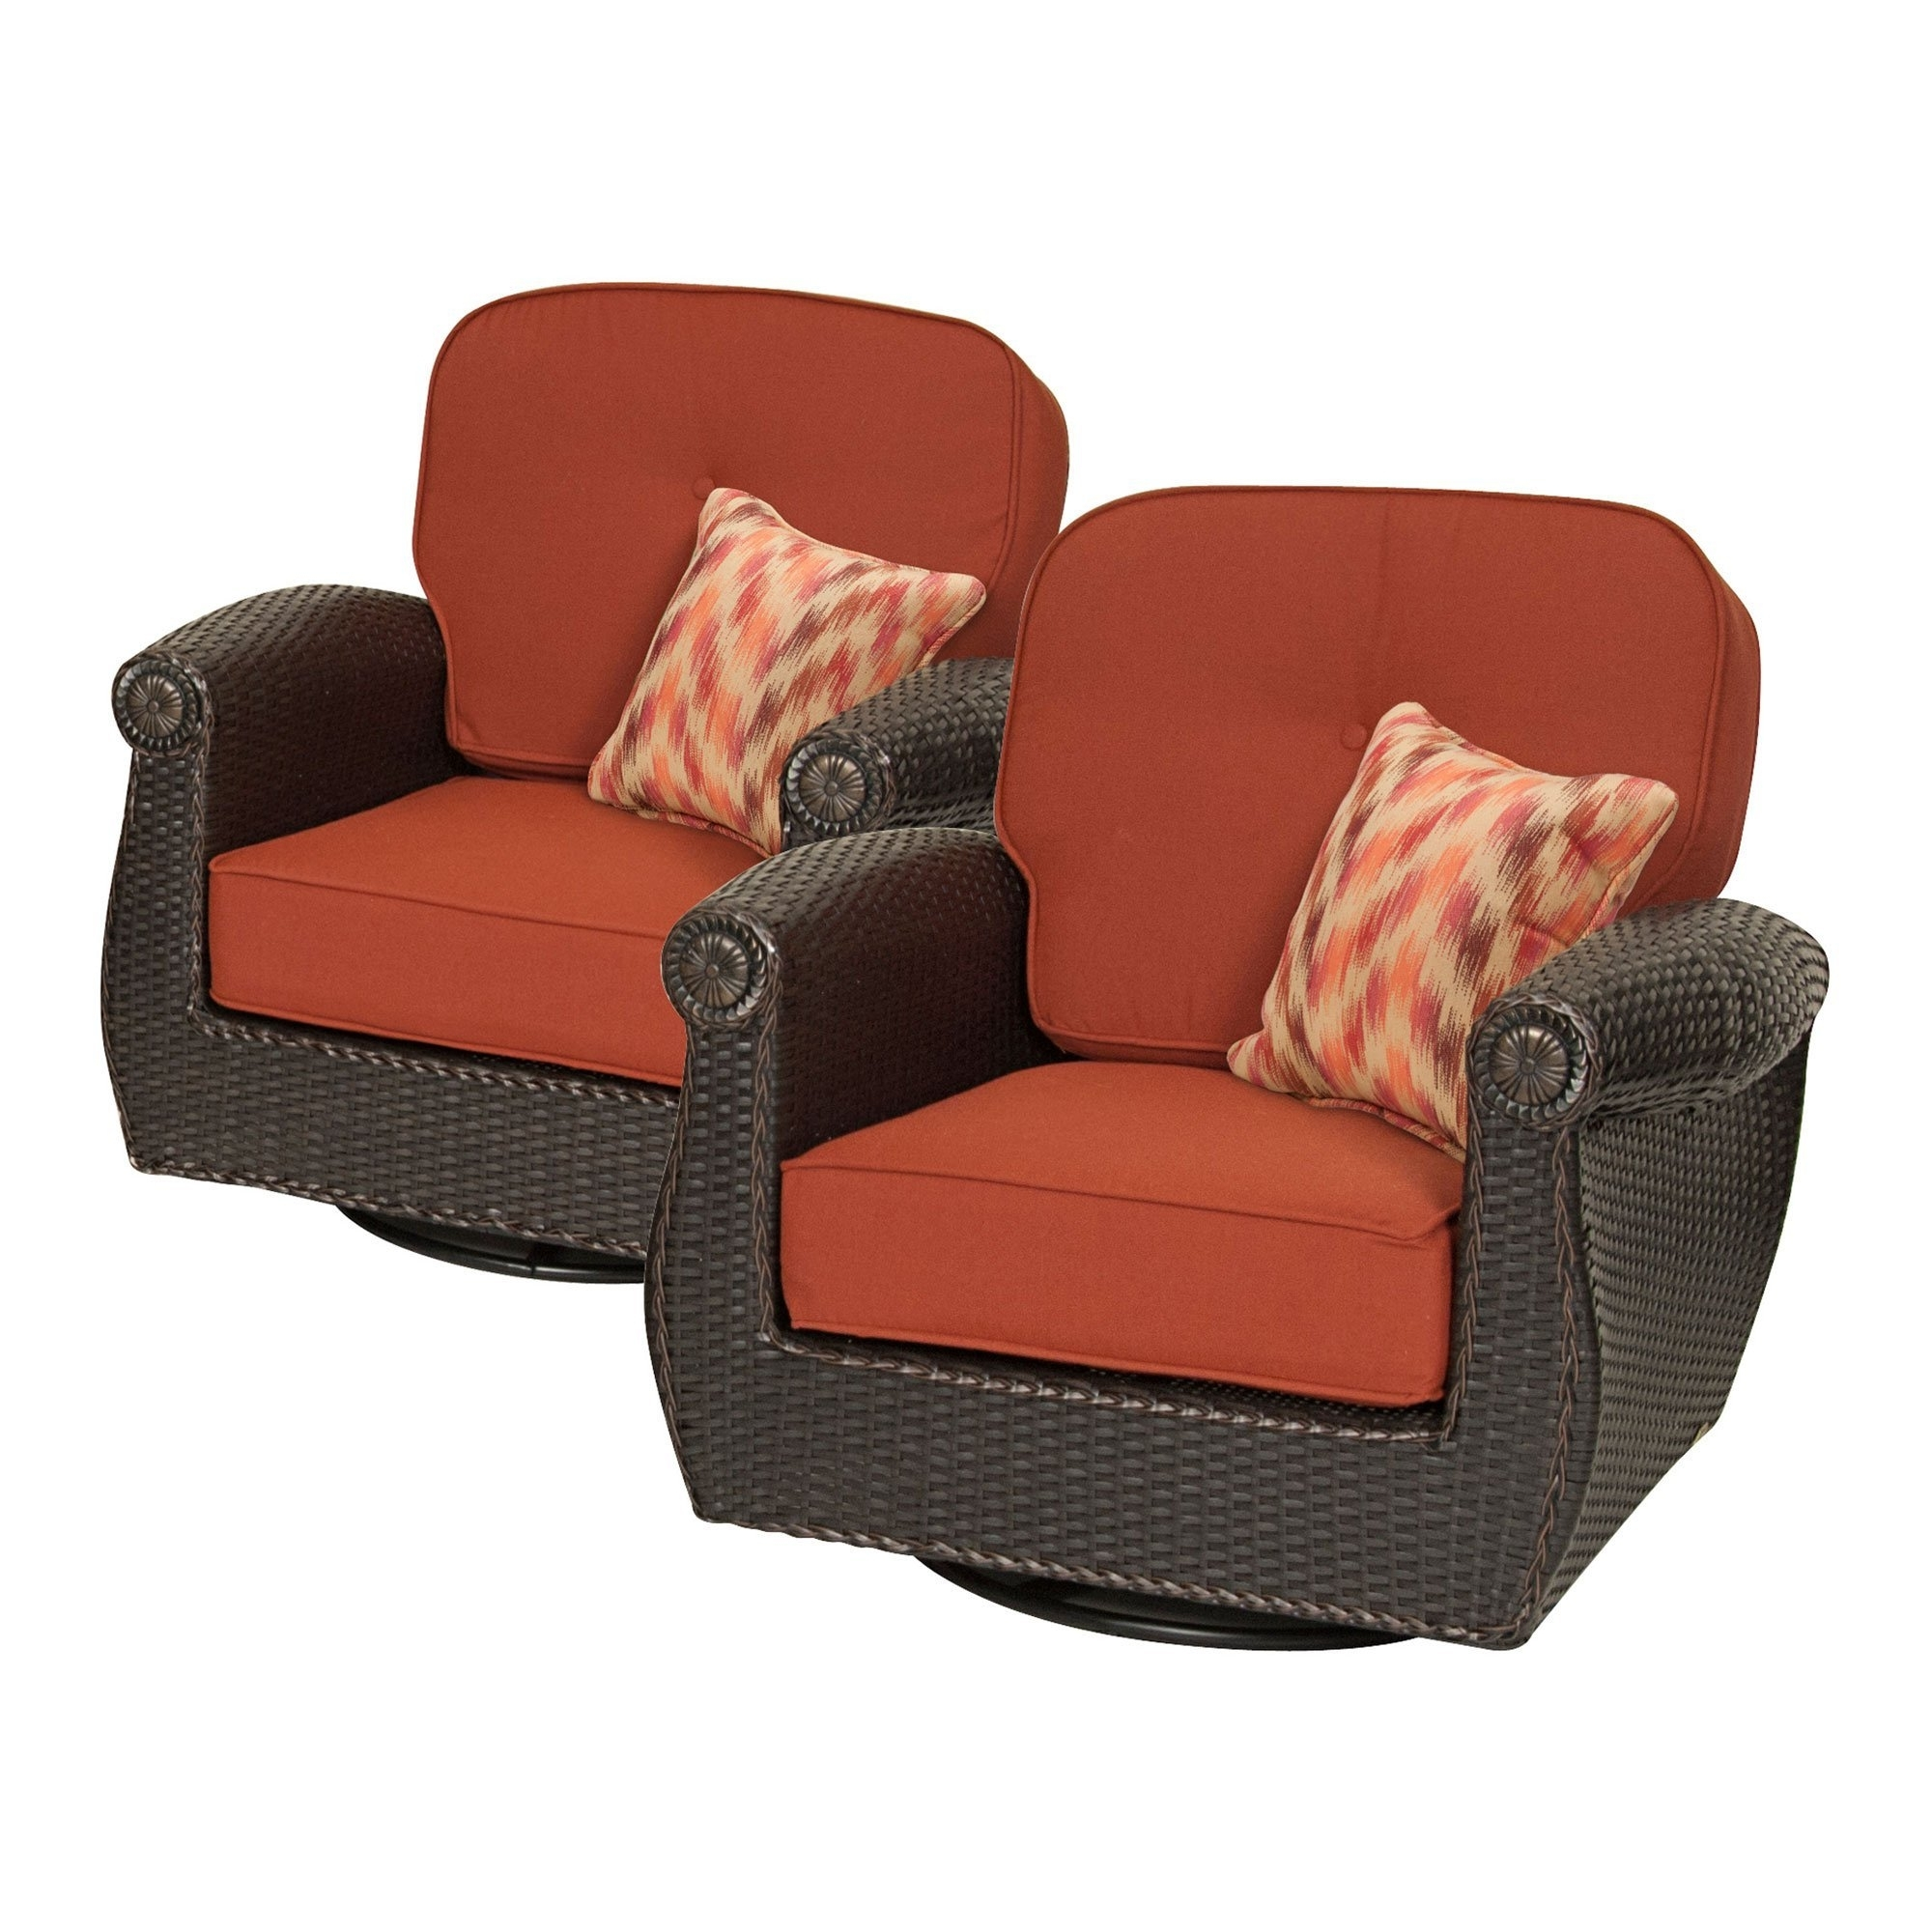 Patio Rocking Swivel Chairs For Trendy Design Of Patio Swivel Chairs Swivel Rocker Patio Chairs Ideas (View 11 of 15)